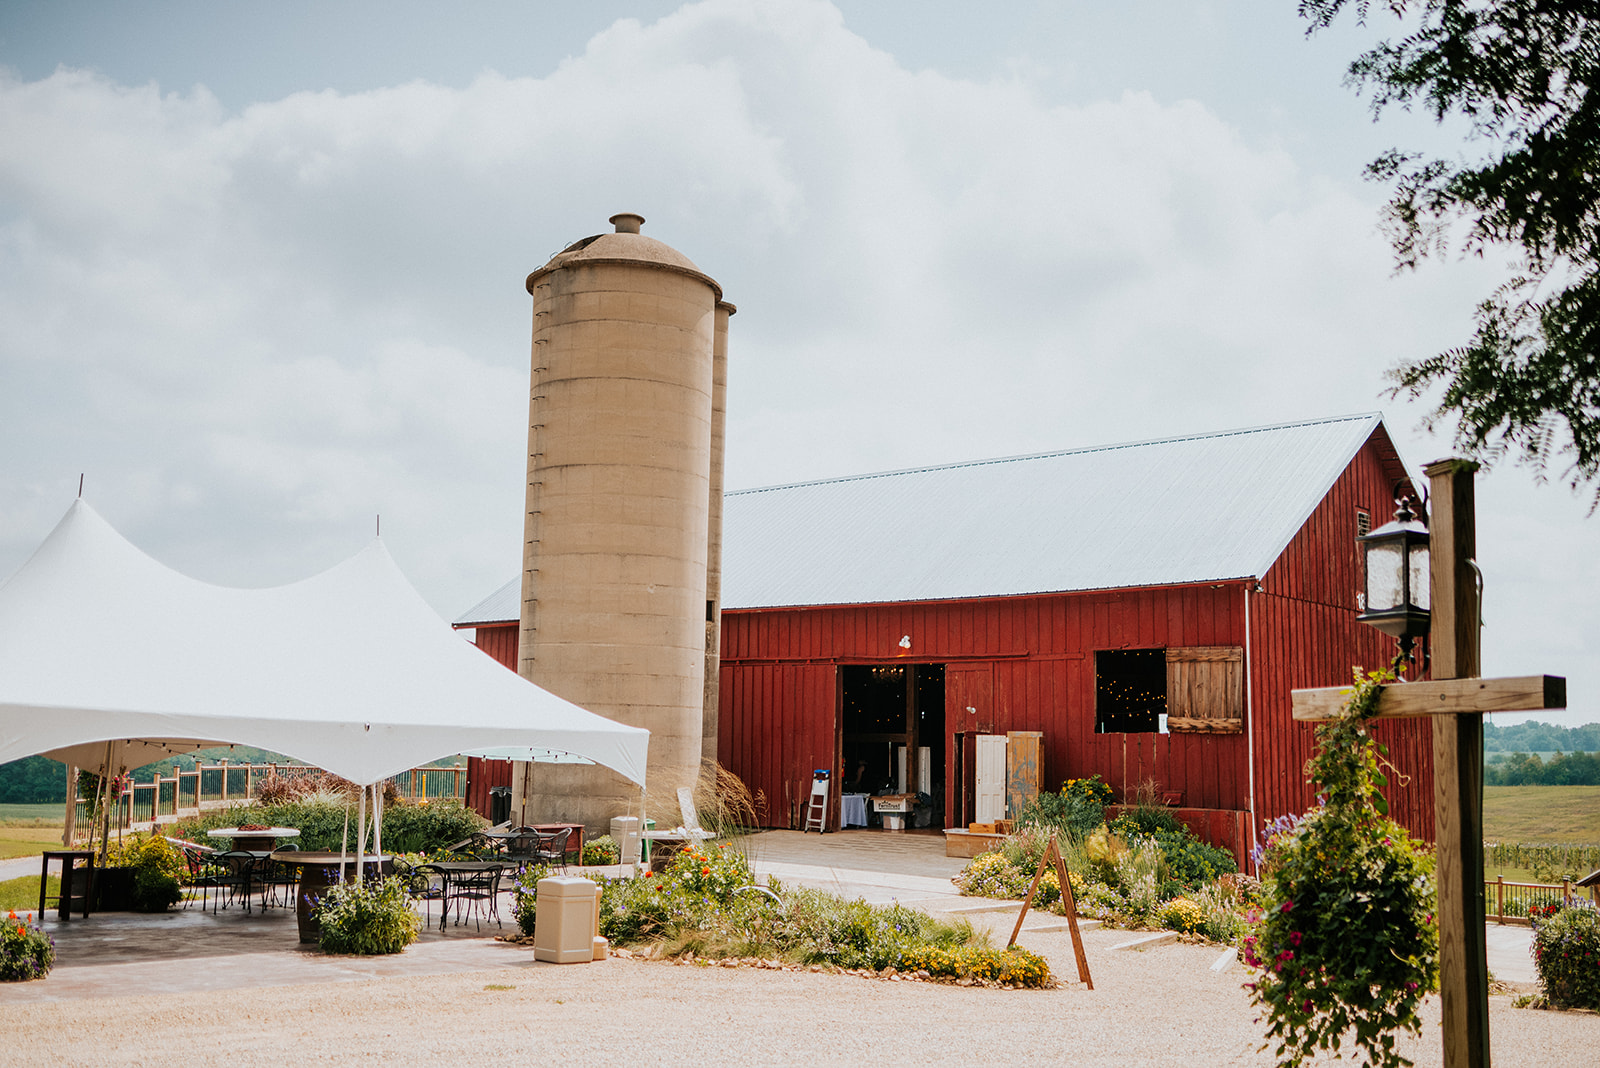 overthevineswisconsinwedding_0005.jpg